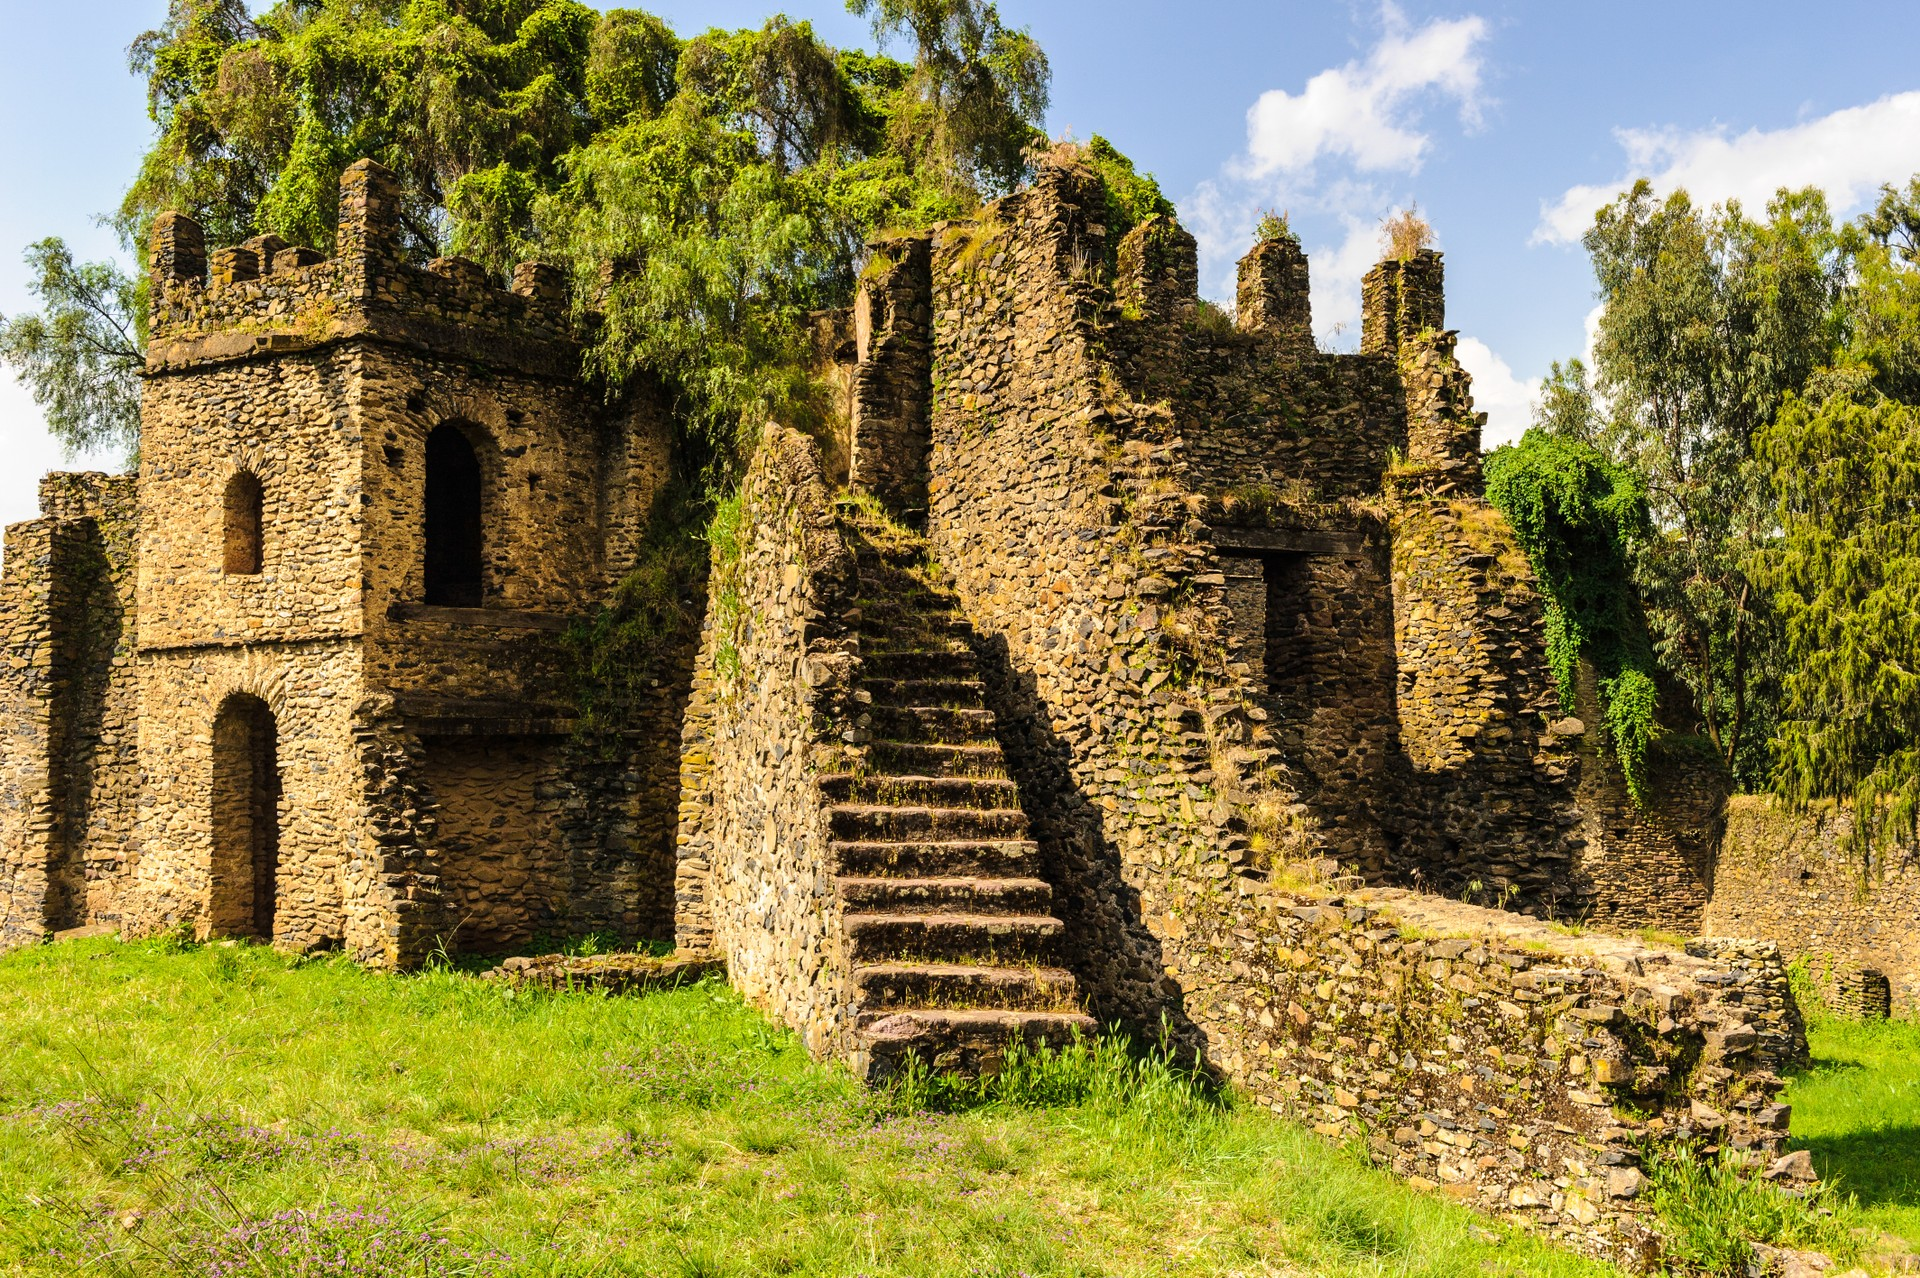 Gondar in Ethiopia is covered in crumbling castles and churches